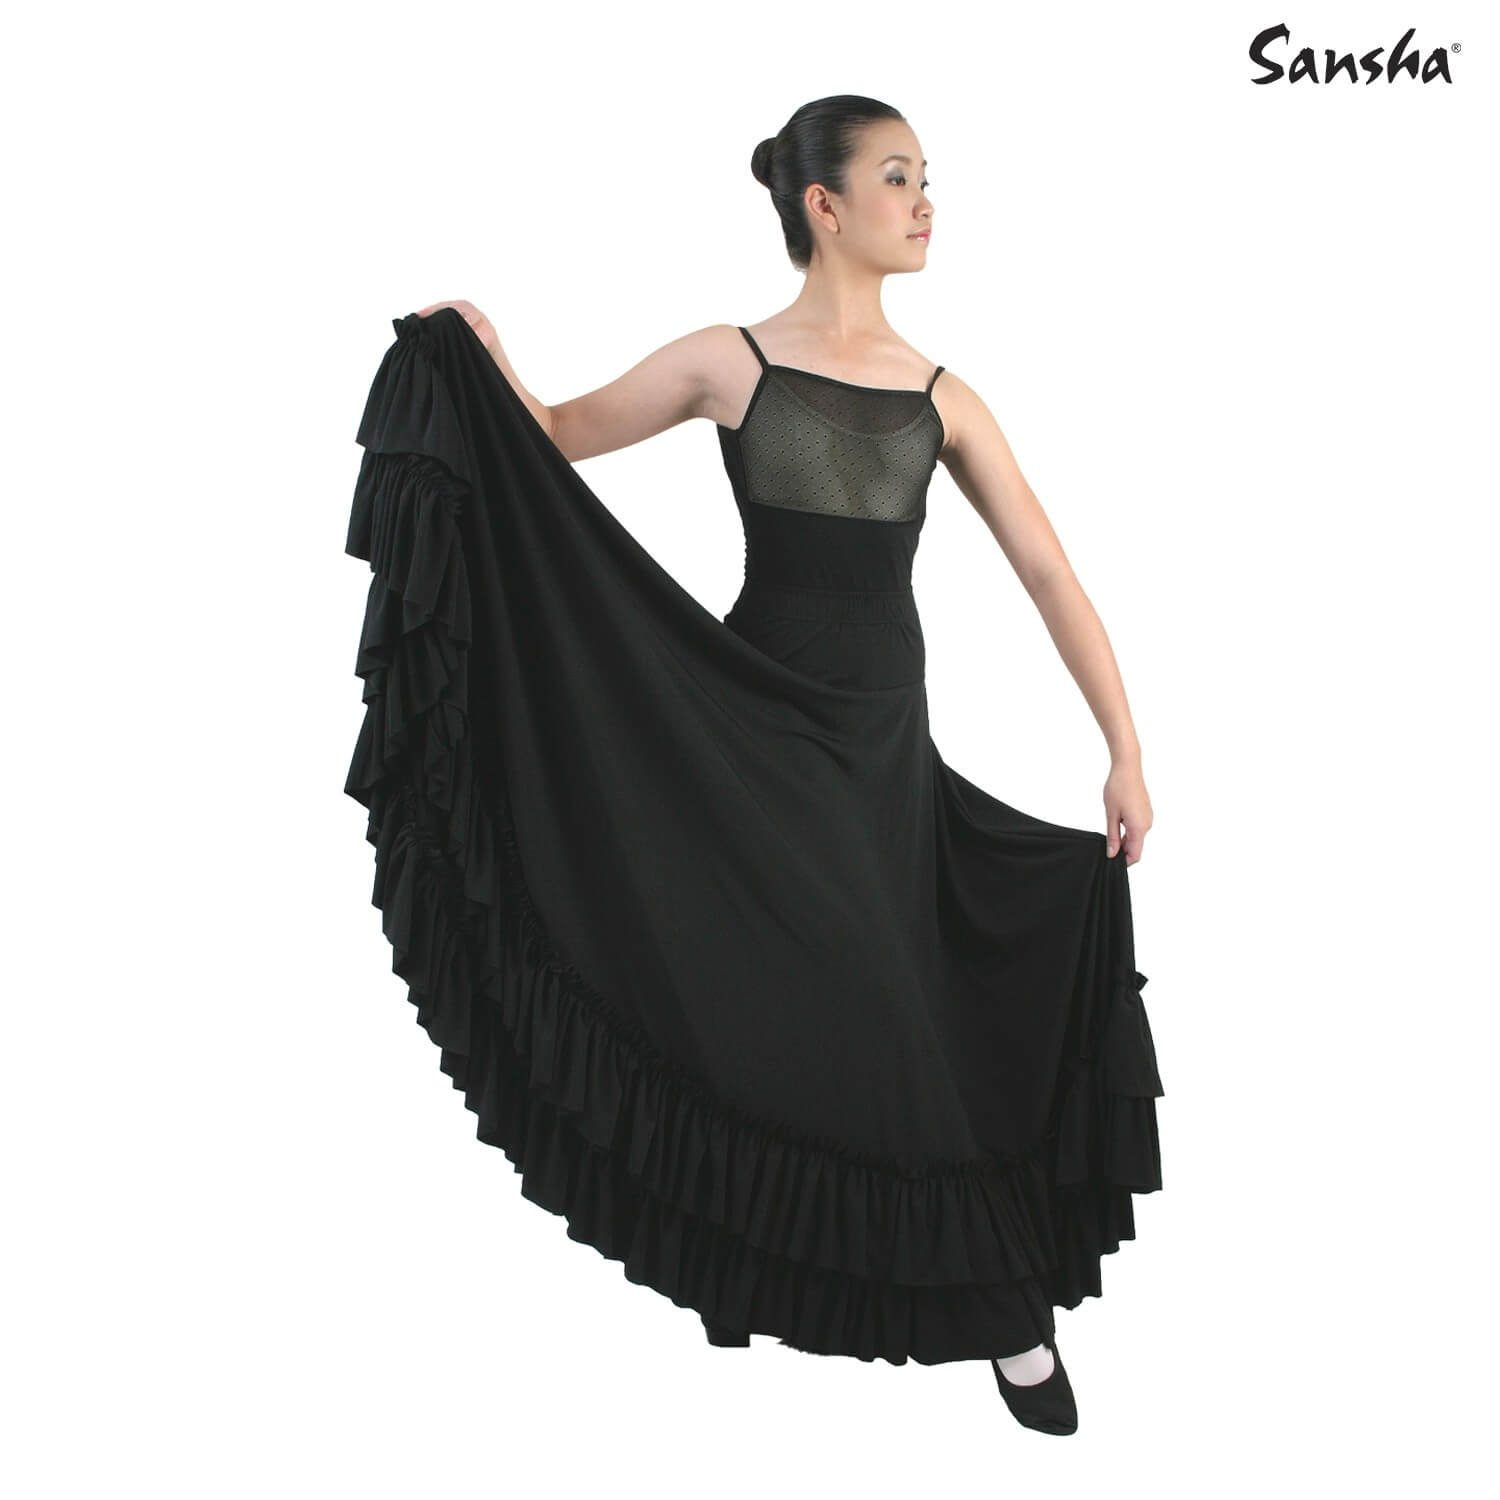 Sansha Flamenco Skirt With Ruffles